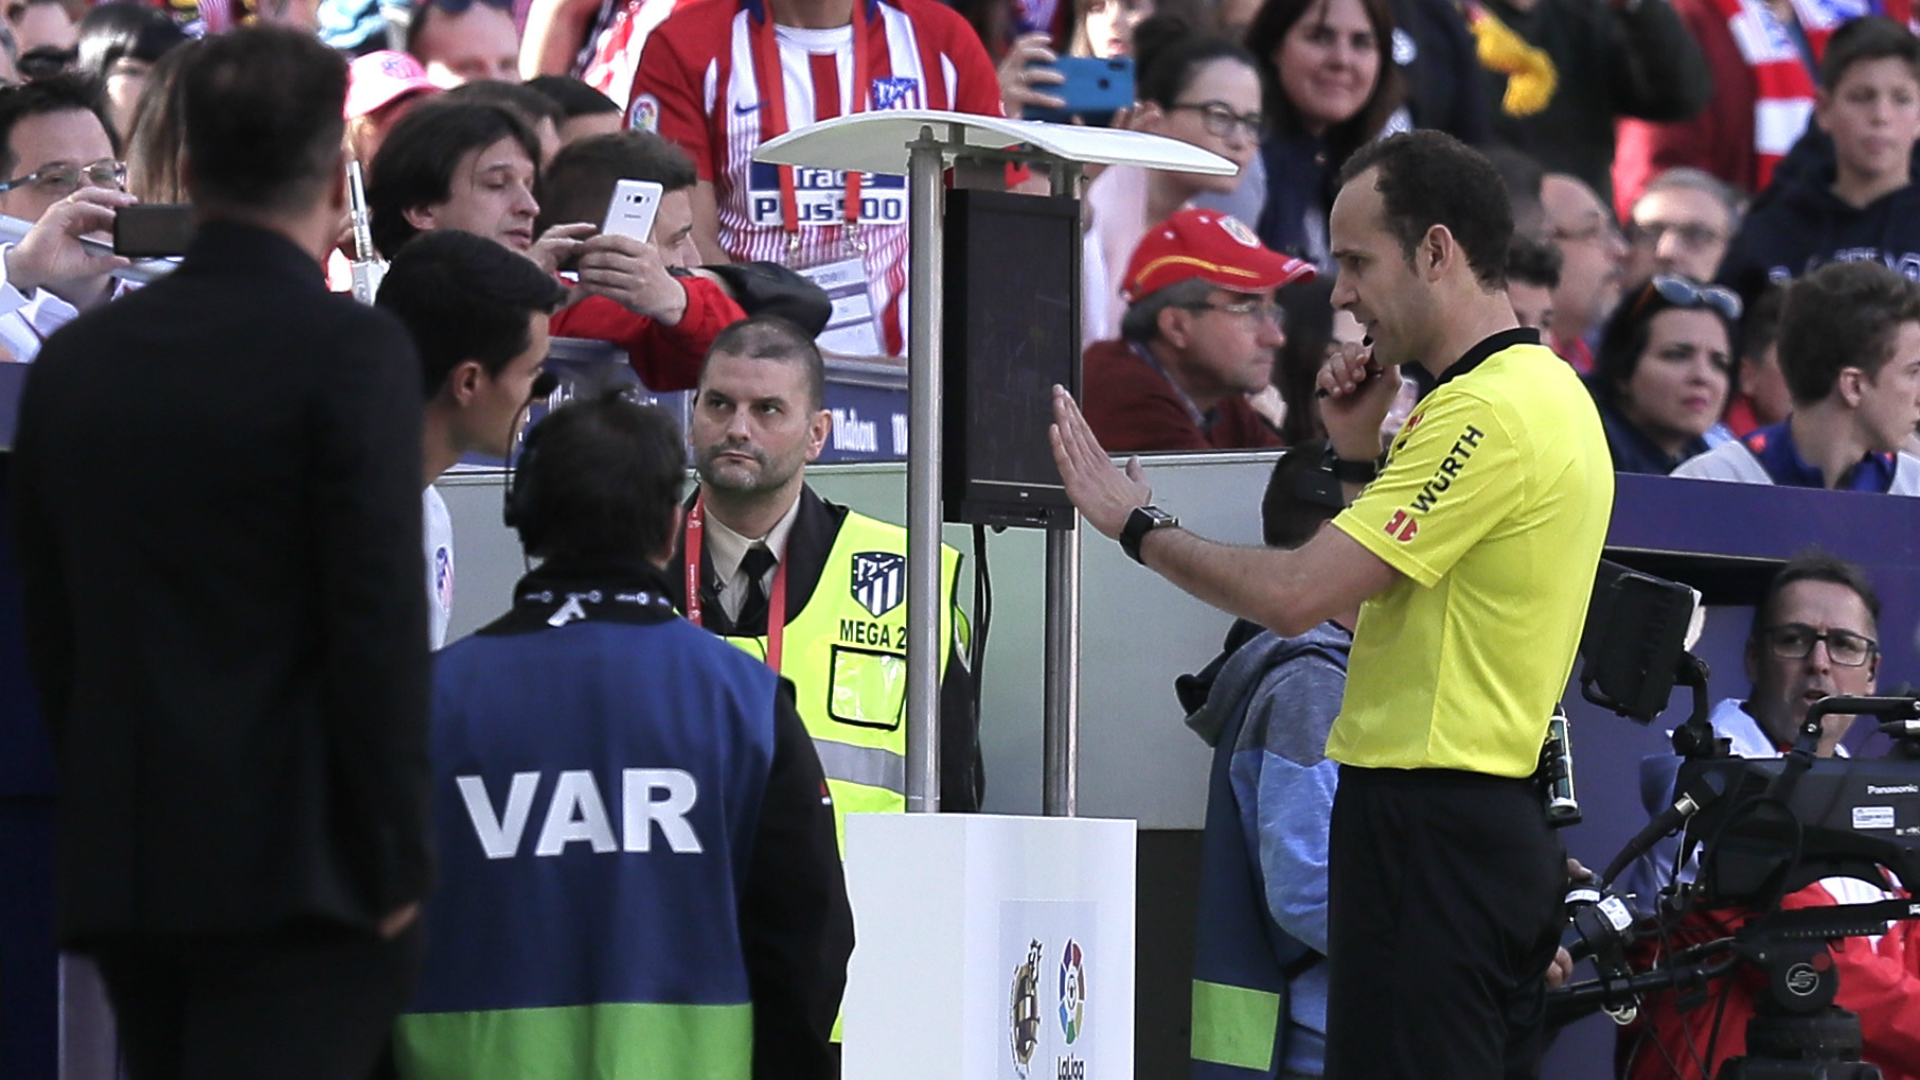 Simeone offers sympathy after Valladolid fume at VAR call